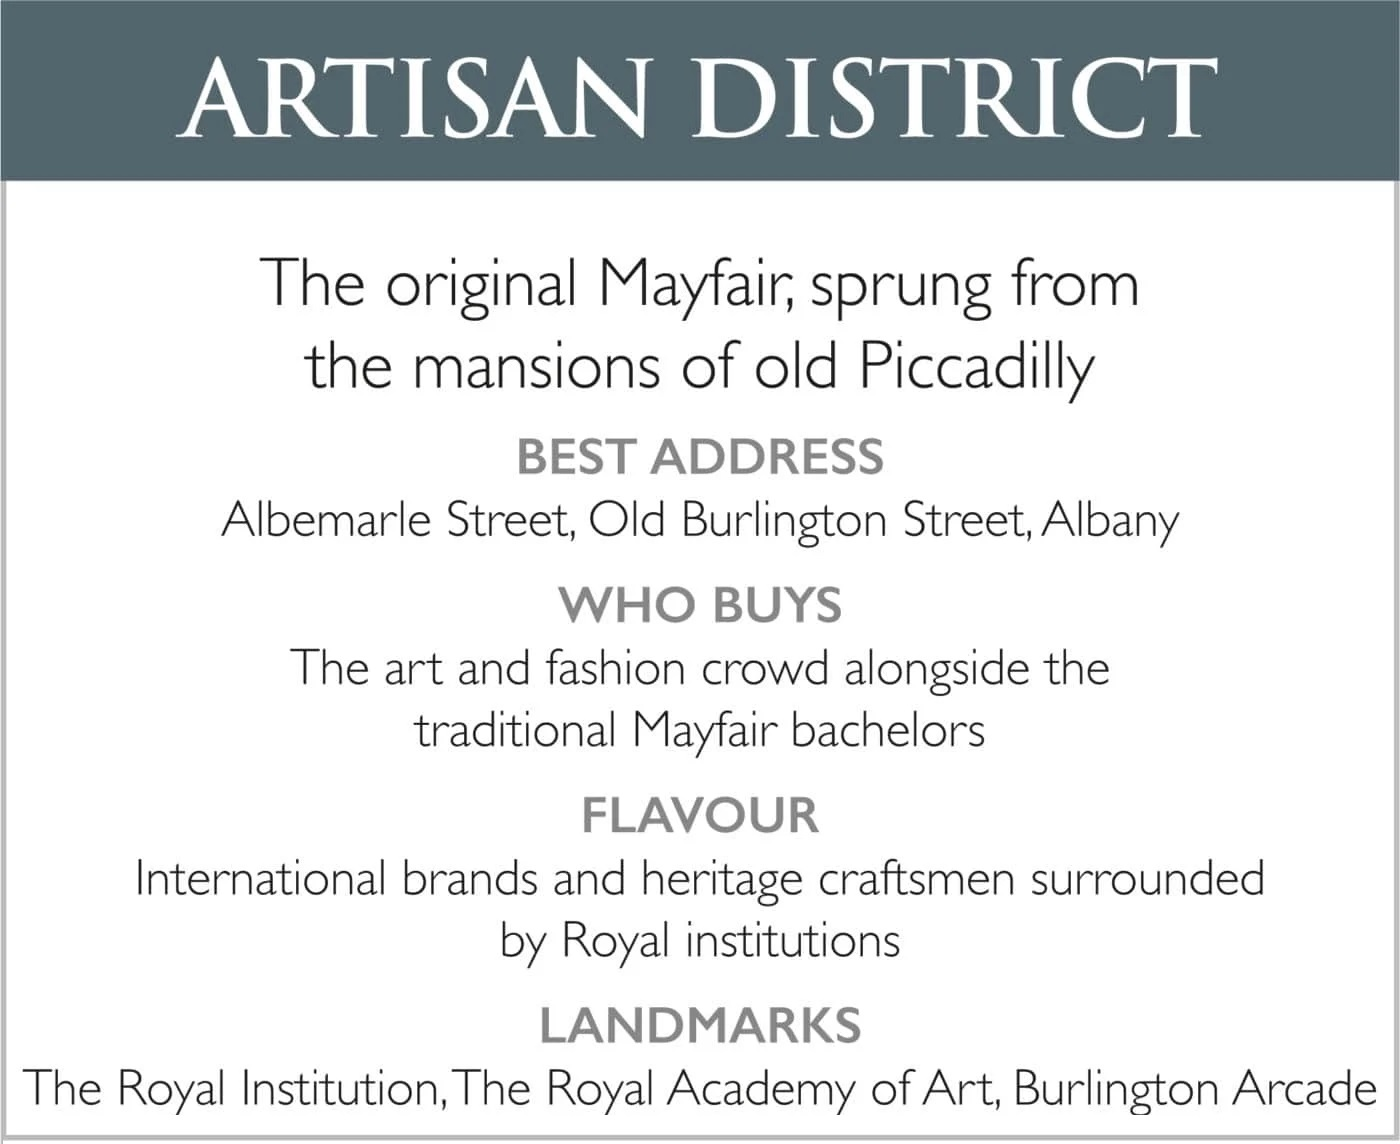 Artisan District List of Features